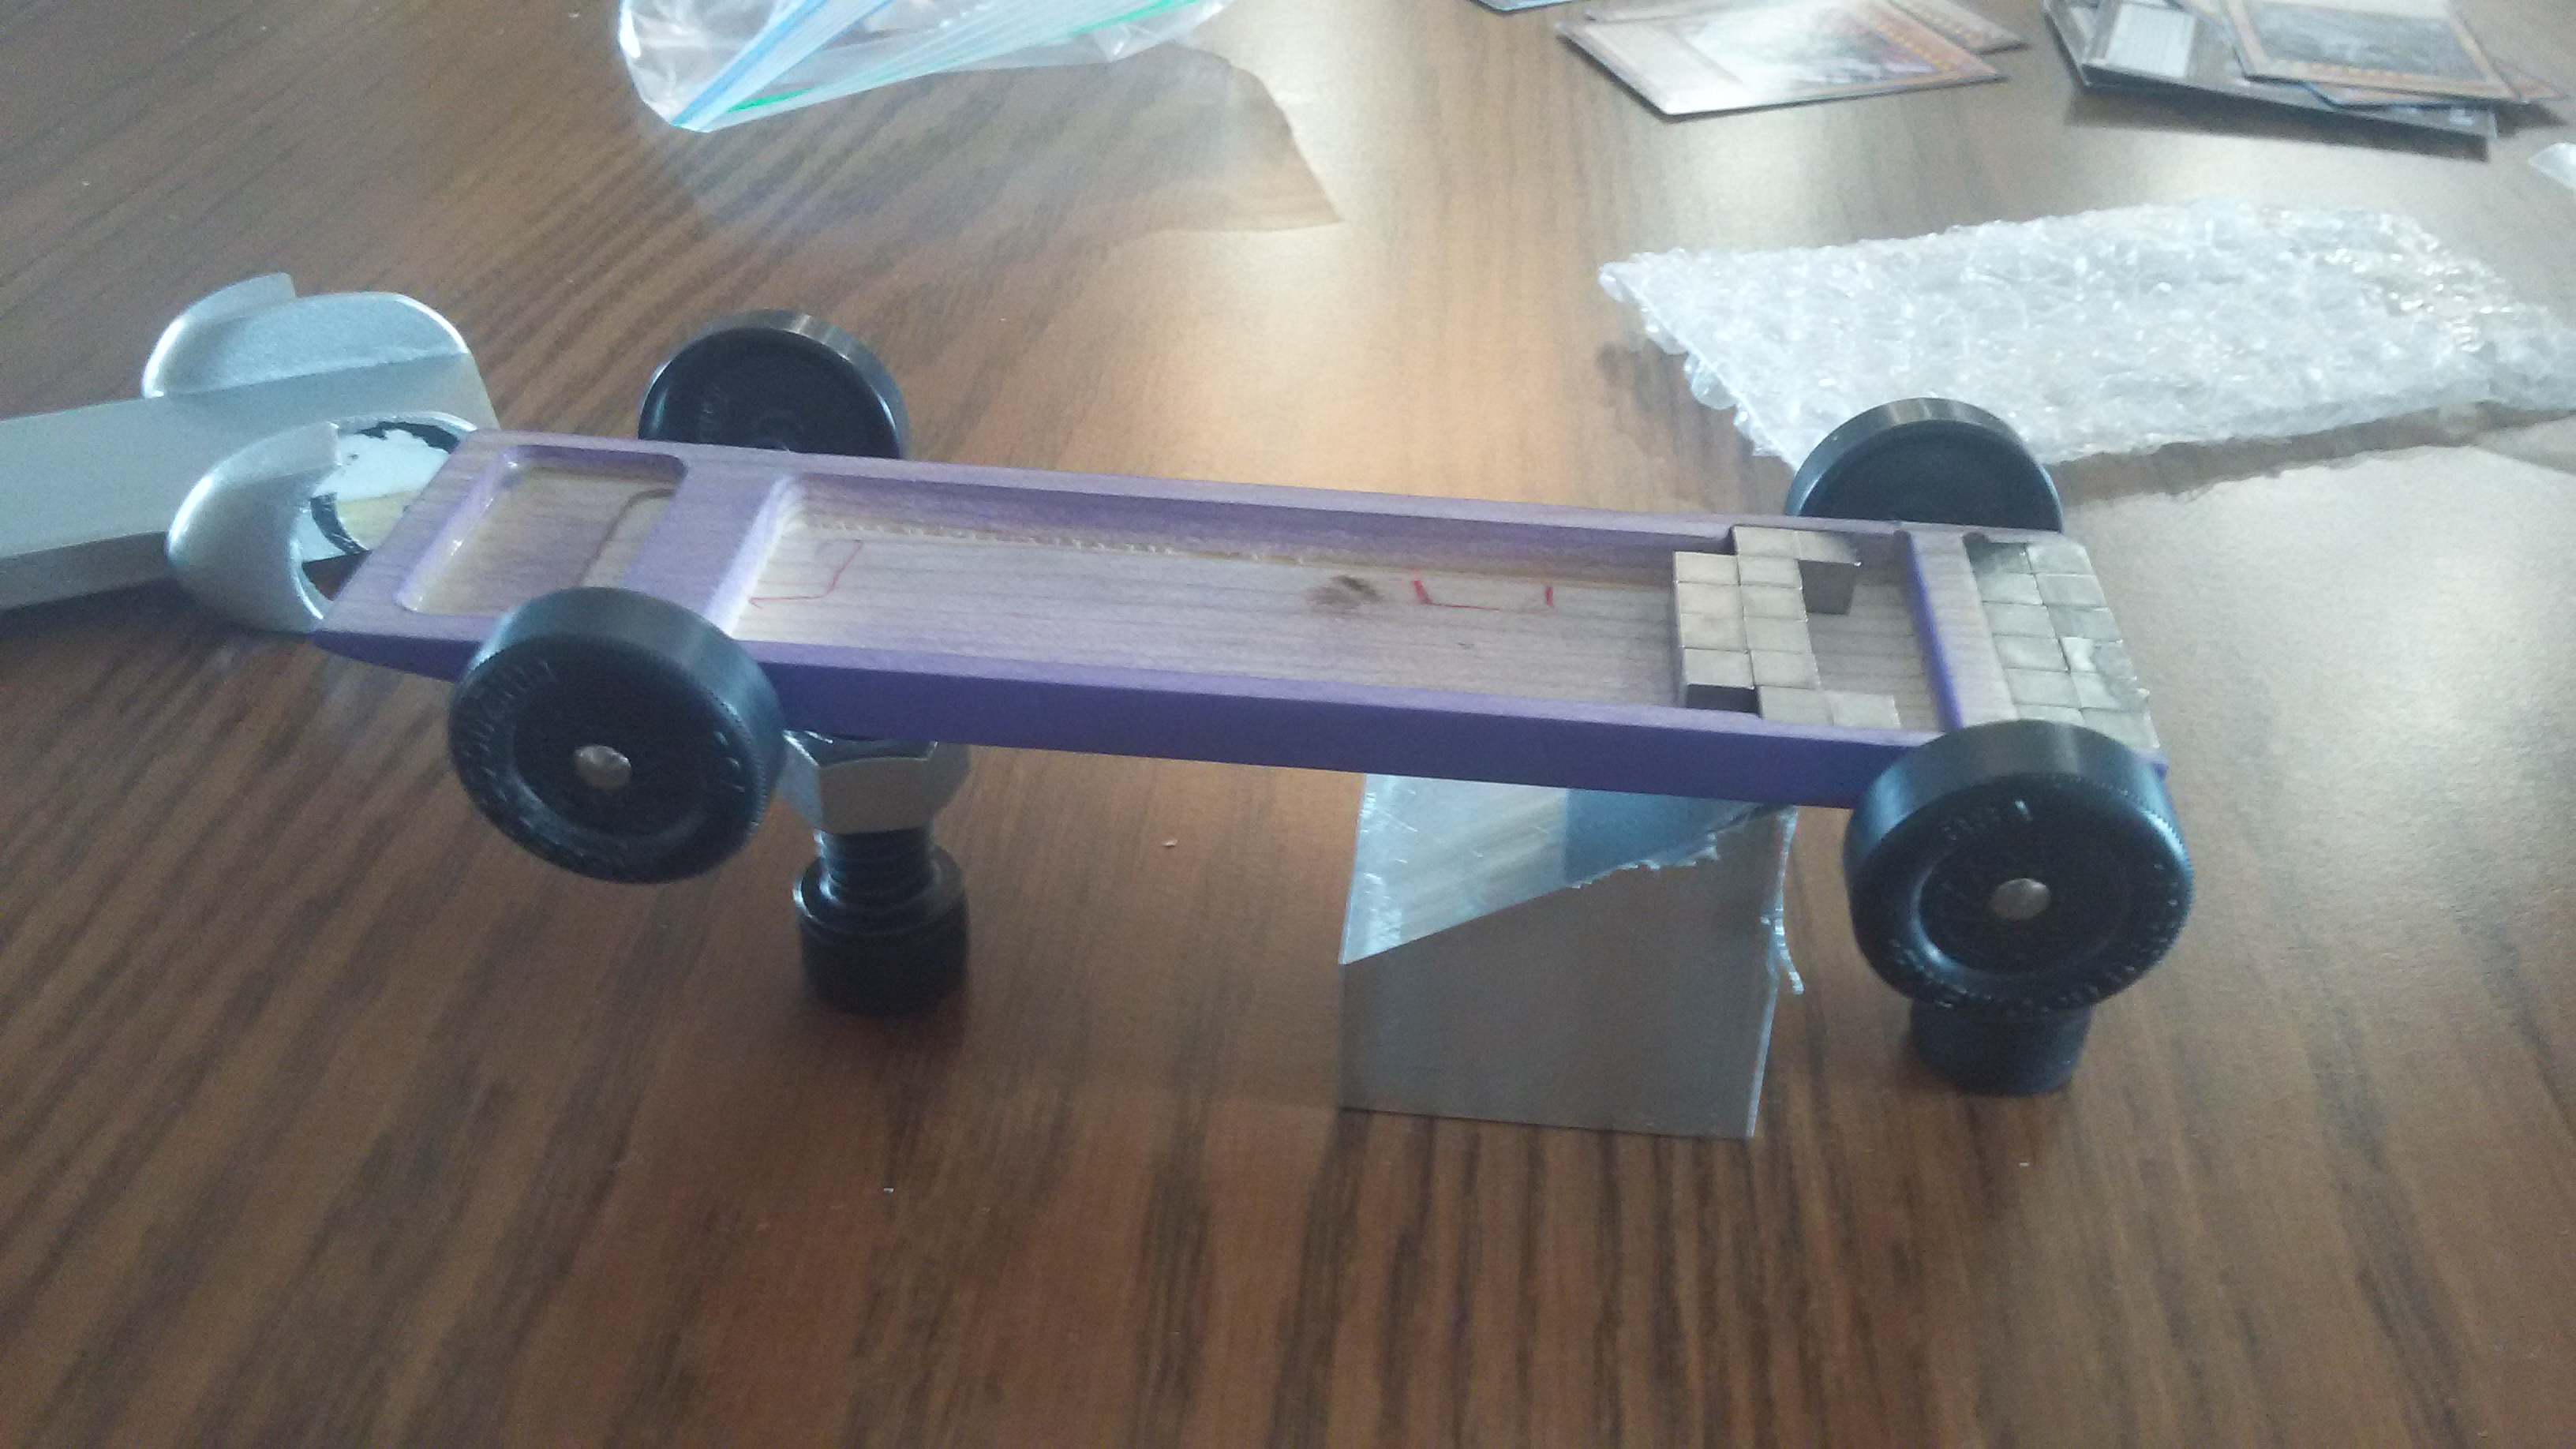 Best place for weight on pinewood derby car